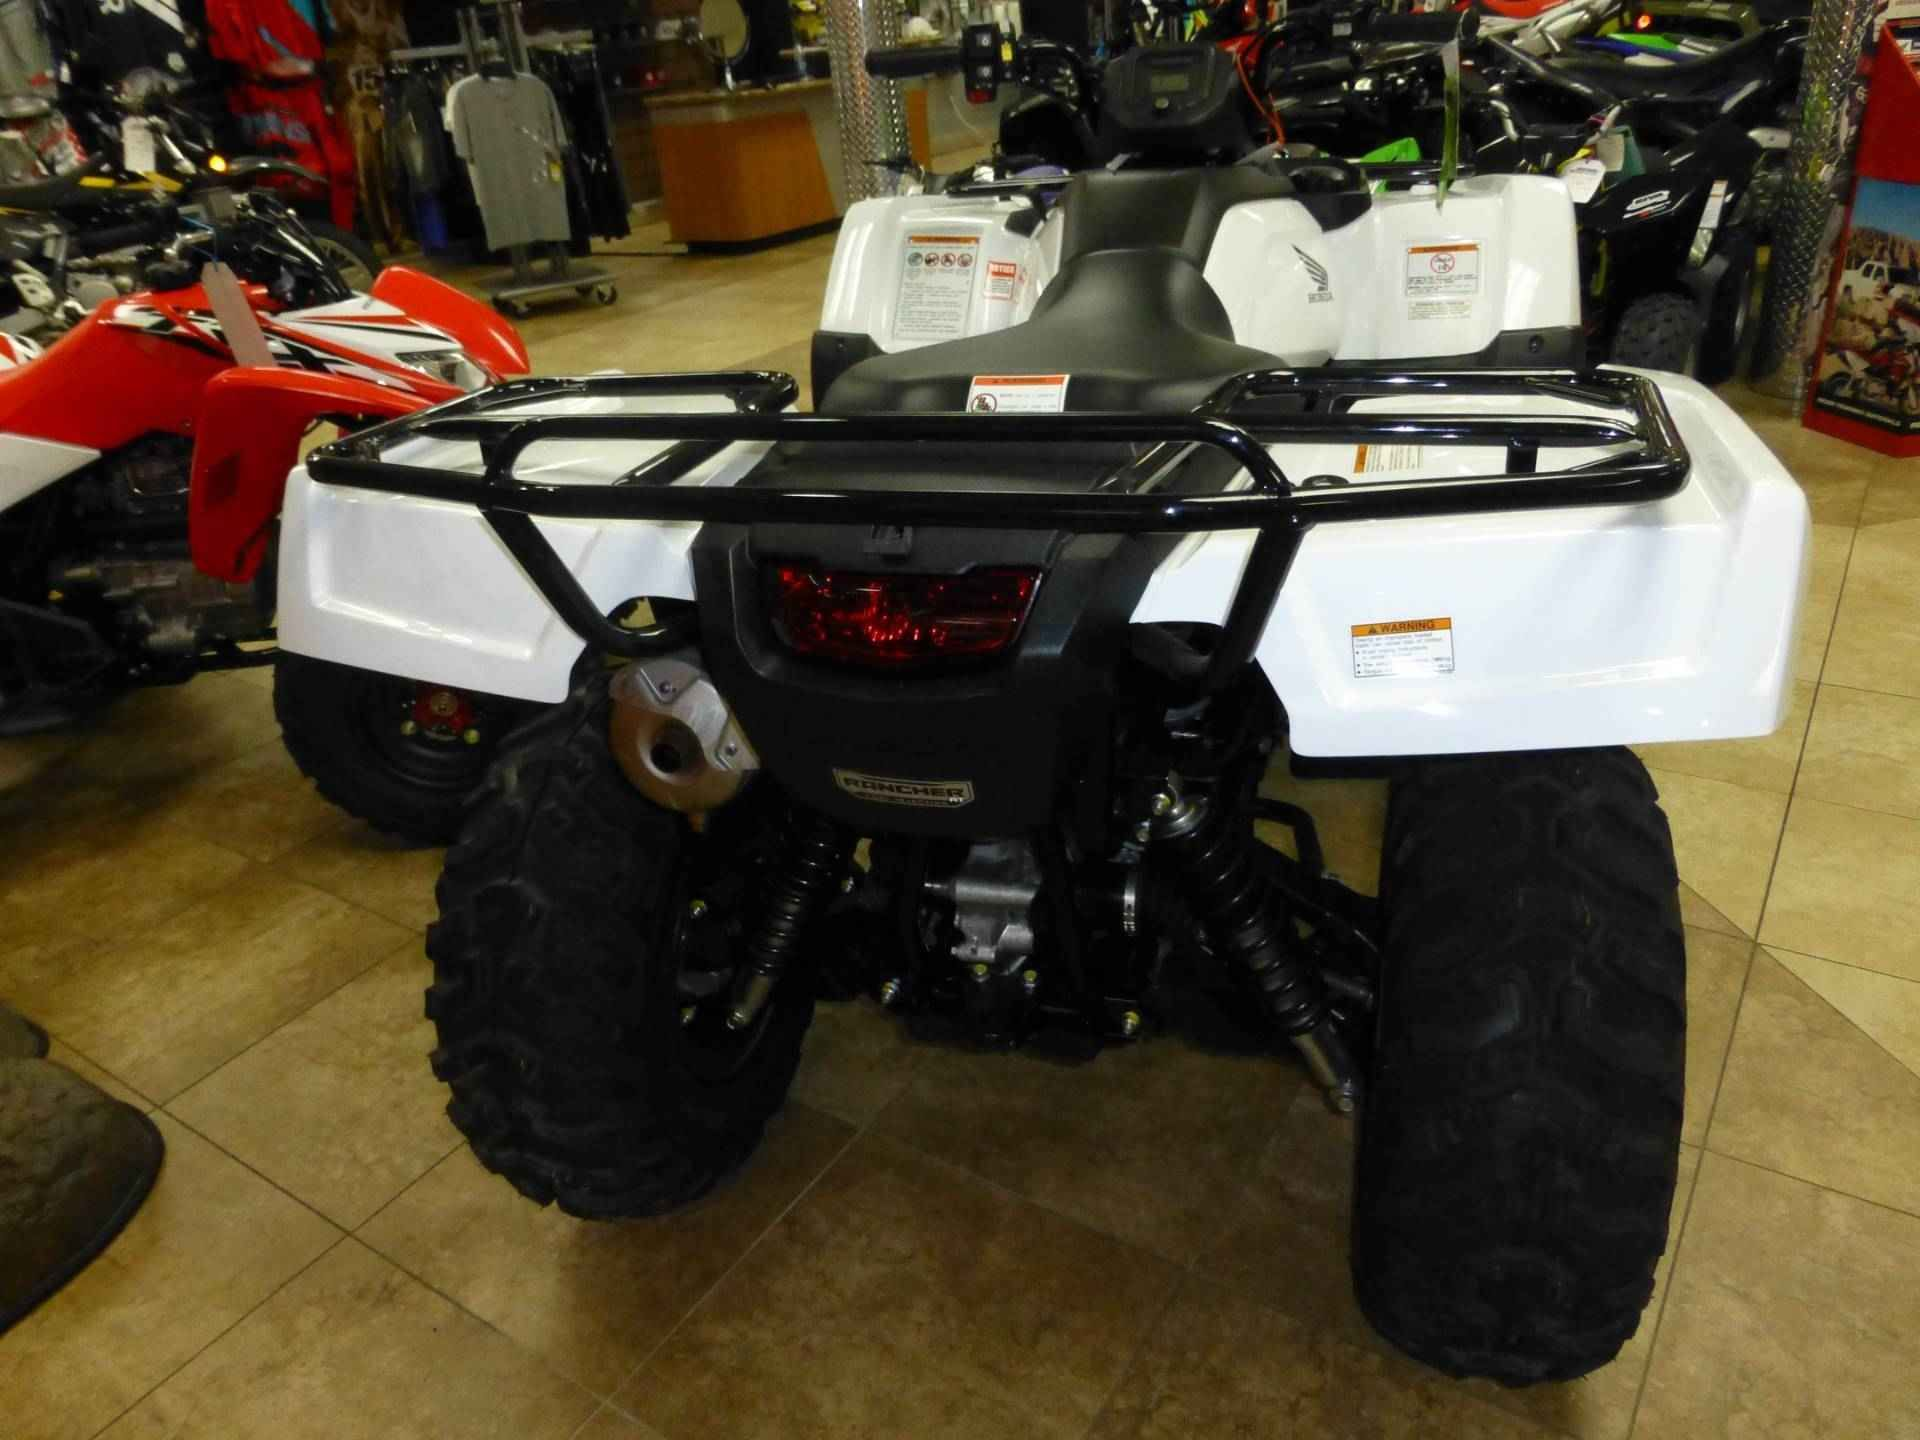 New 2016 Honda FourTrax® Rancher® 4X4 Automatic DCT IRS ATVs For Sale in Florida. as low as $151/MONTH * Every ATV starts with a dream. And where do you dream of riding? Maybe you'll use your ATV for hunting or fishing. Maybe it needs to work hard on the farm, ranch or jobsite. Maybe you want to get out and explore someplace where the cellphone doesn't ring, where the air is cold and clean. Or maybe it's for chores around your property. Chances are, it's going to be a little of all…